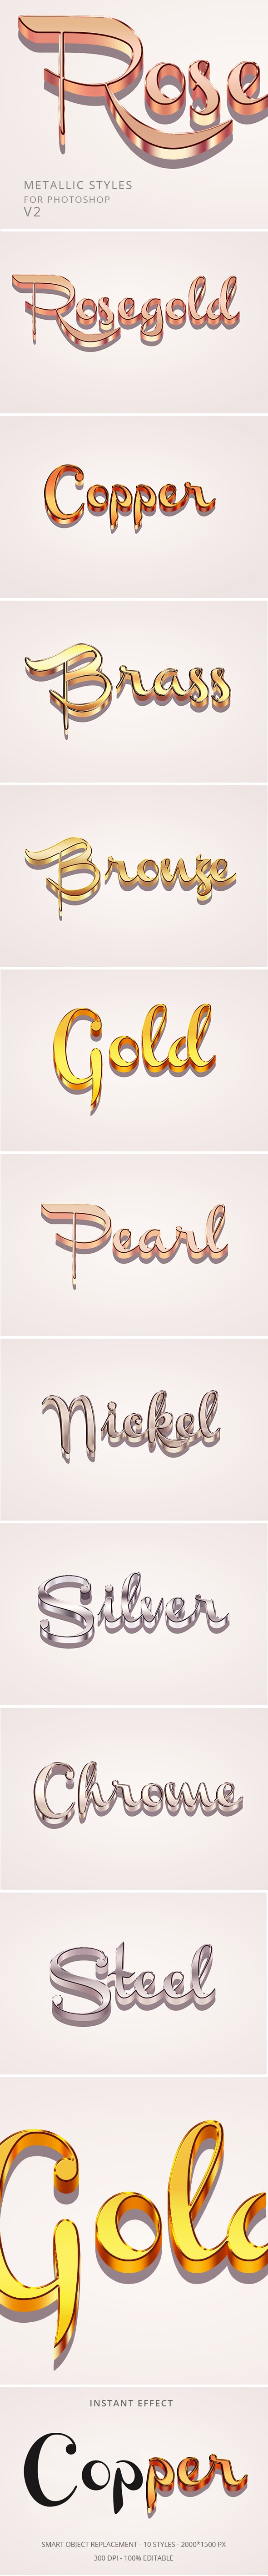 Metal Text Effects - Text Effects Actions